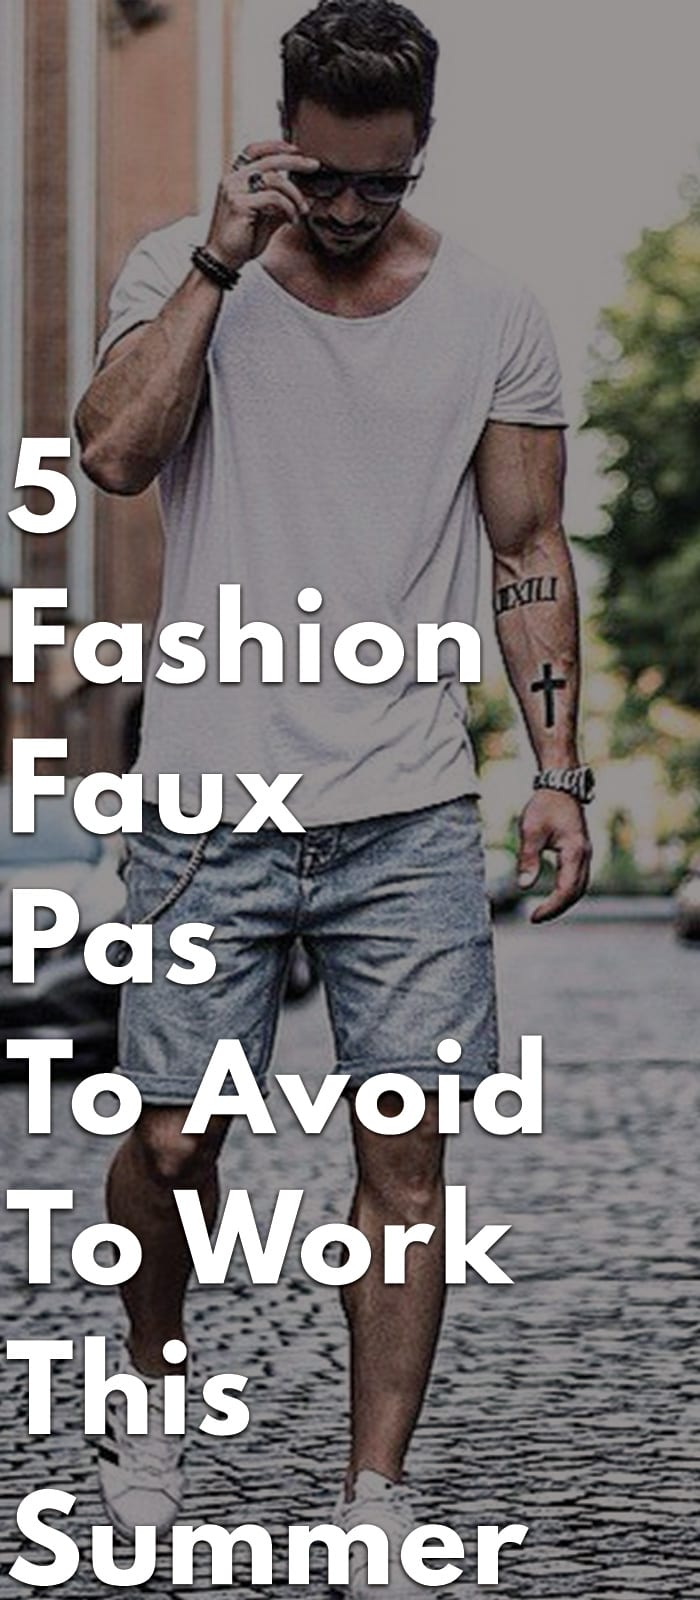 5-Fashion-Faux-Pas-To-Avoid-To-Work-This-Summer